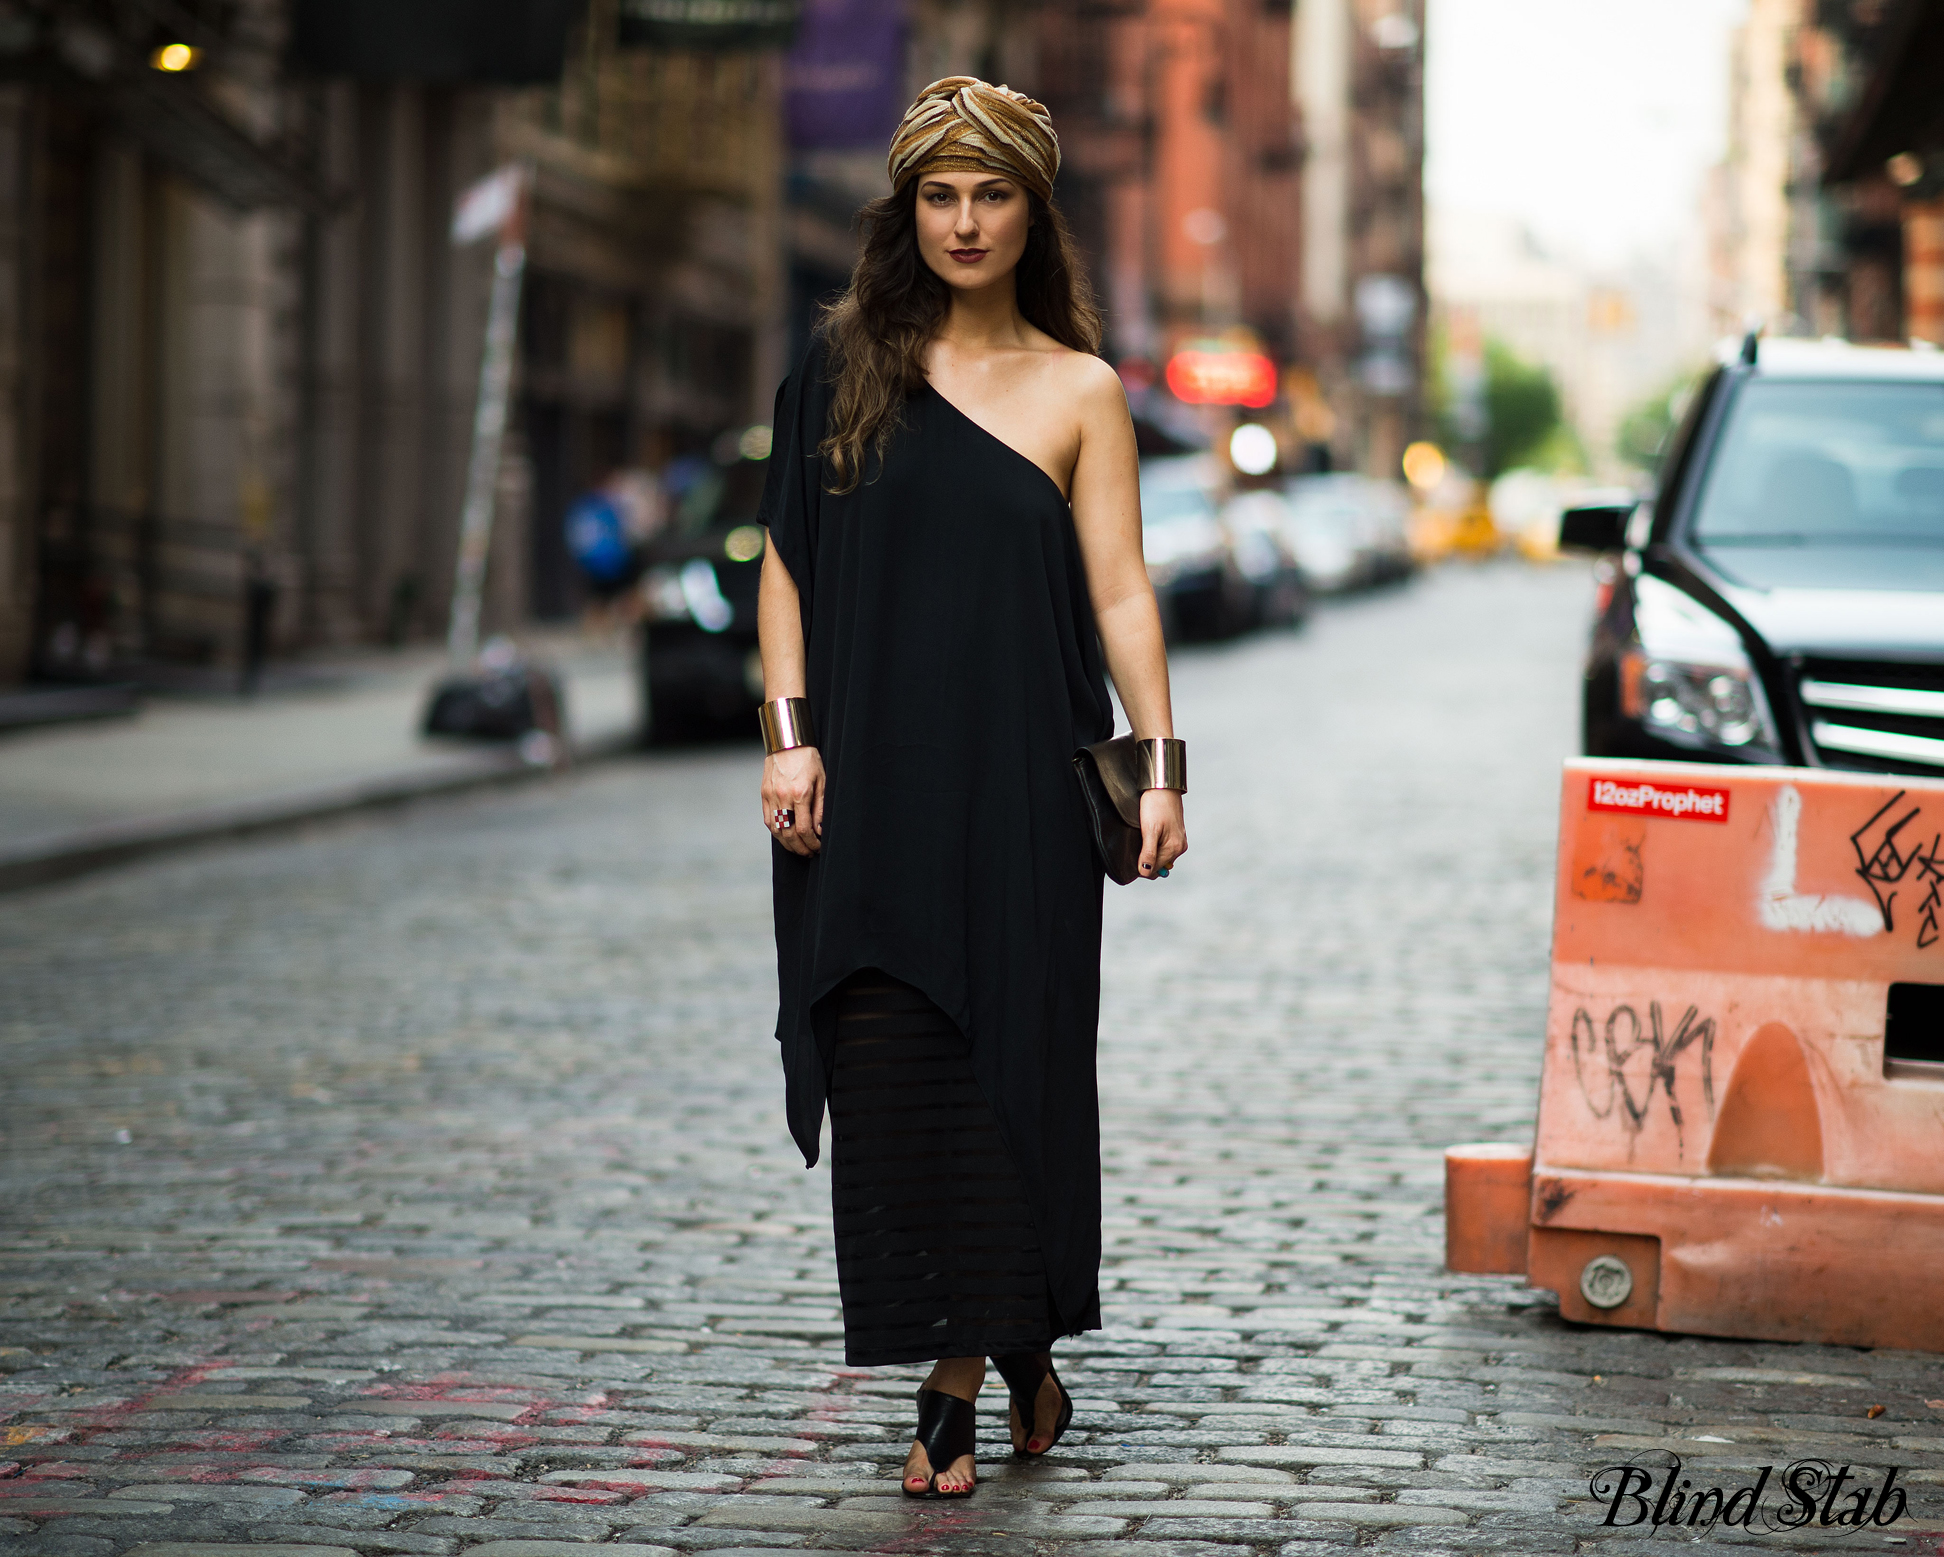 Gold-Hair-Streetstyle-NYC-Curvy